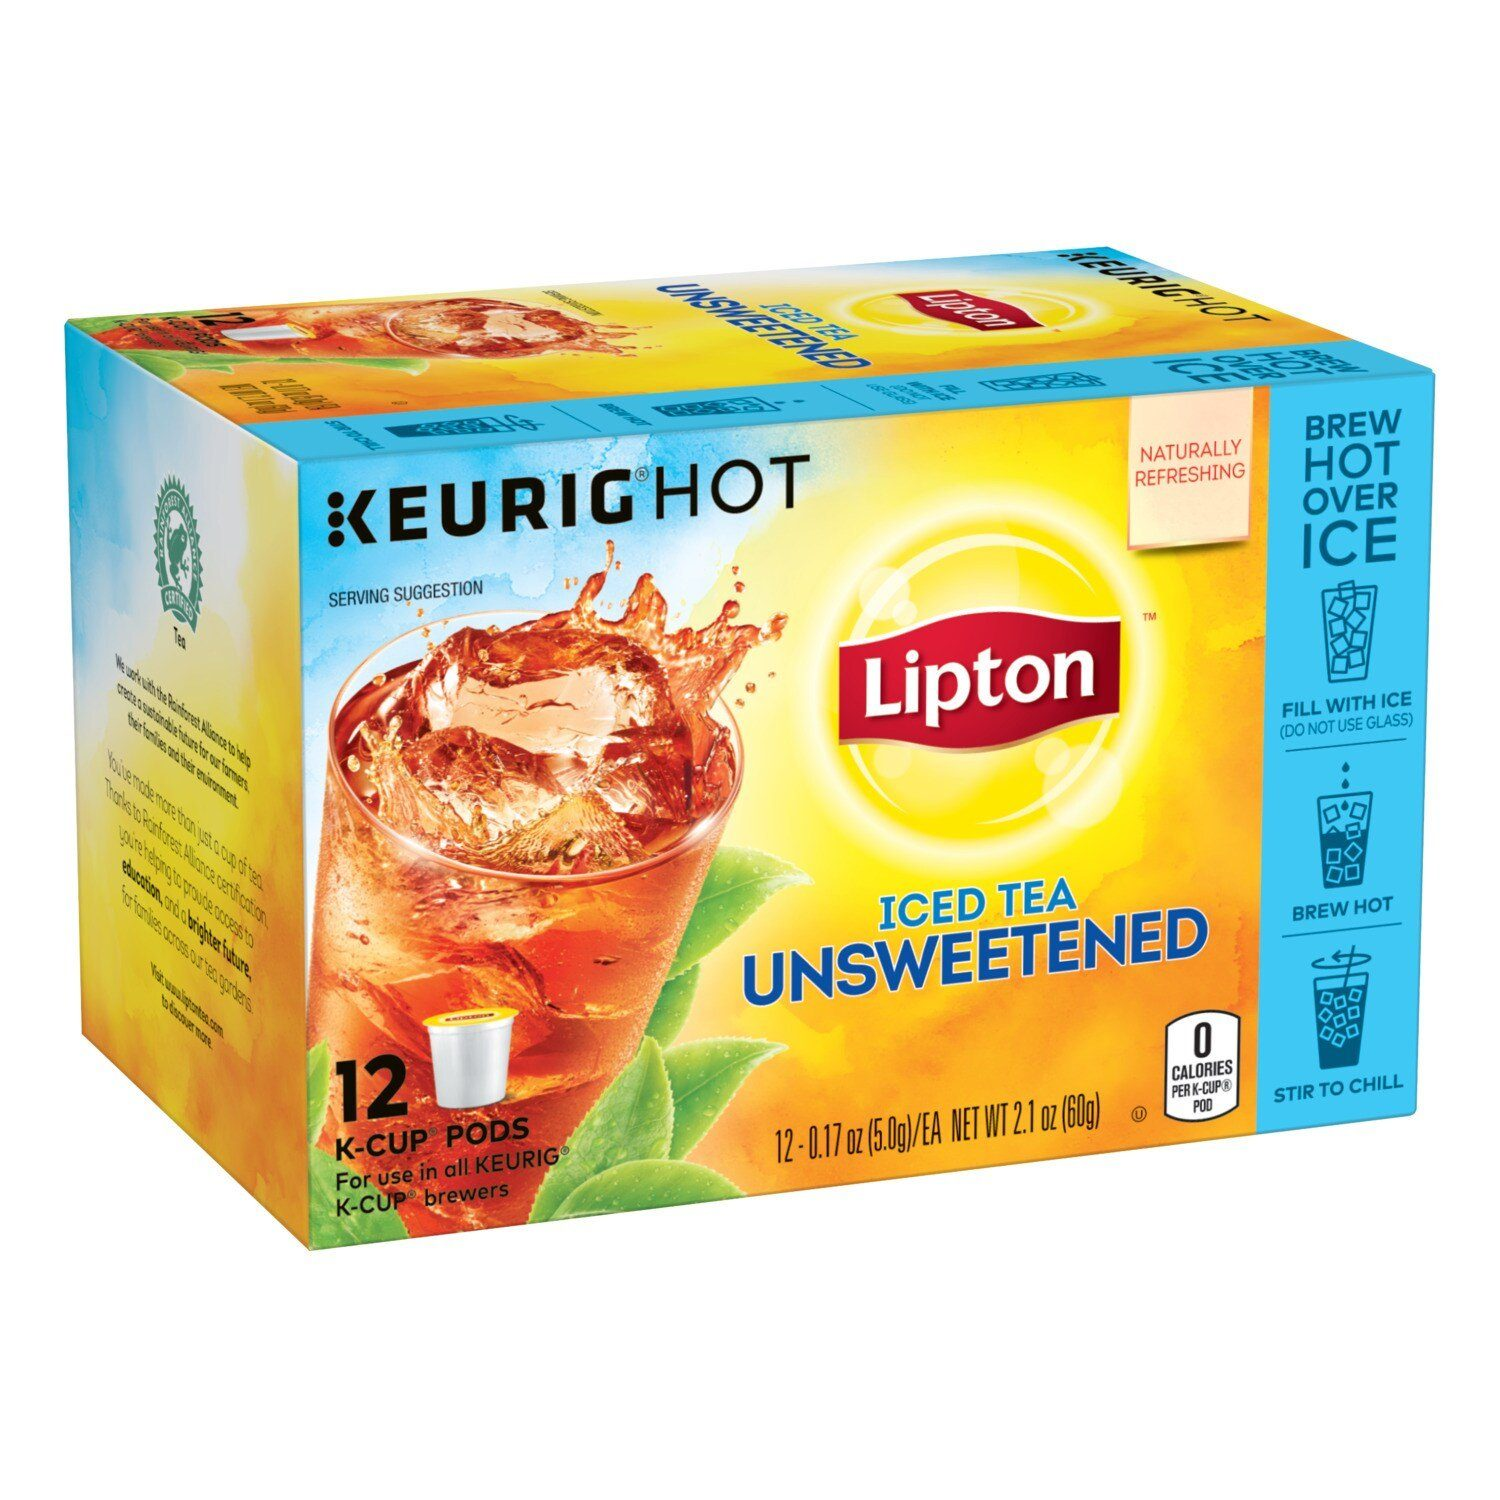 Lipton Tea K-Cups Lipton Iced Tea Unsweetened 12 Count